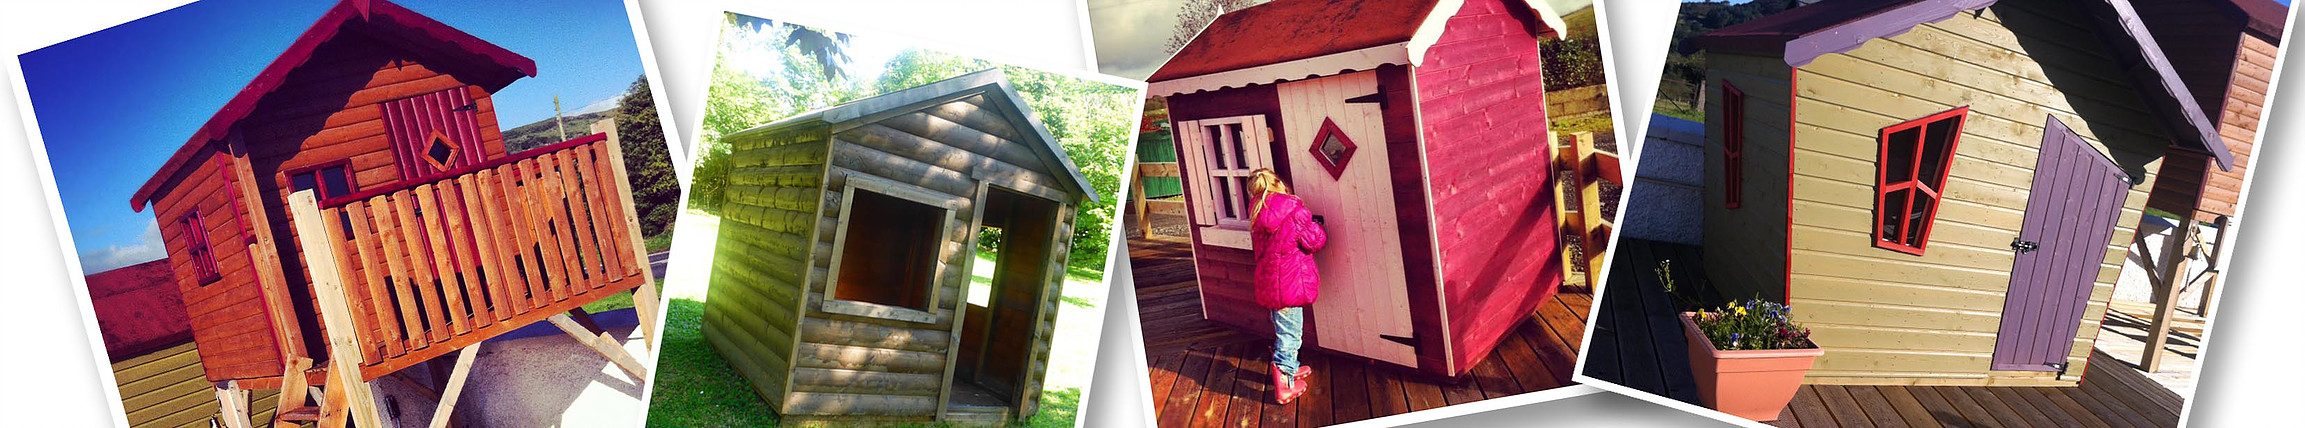 Playhouse Build and Raffle